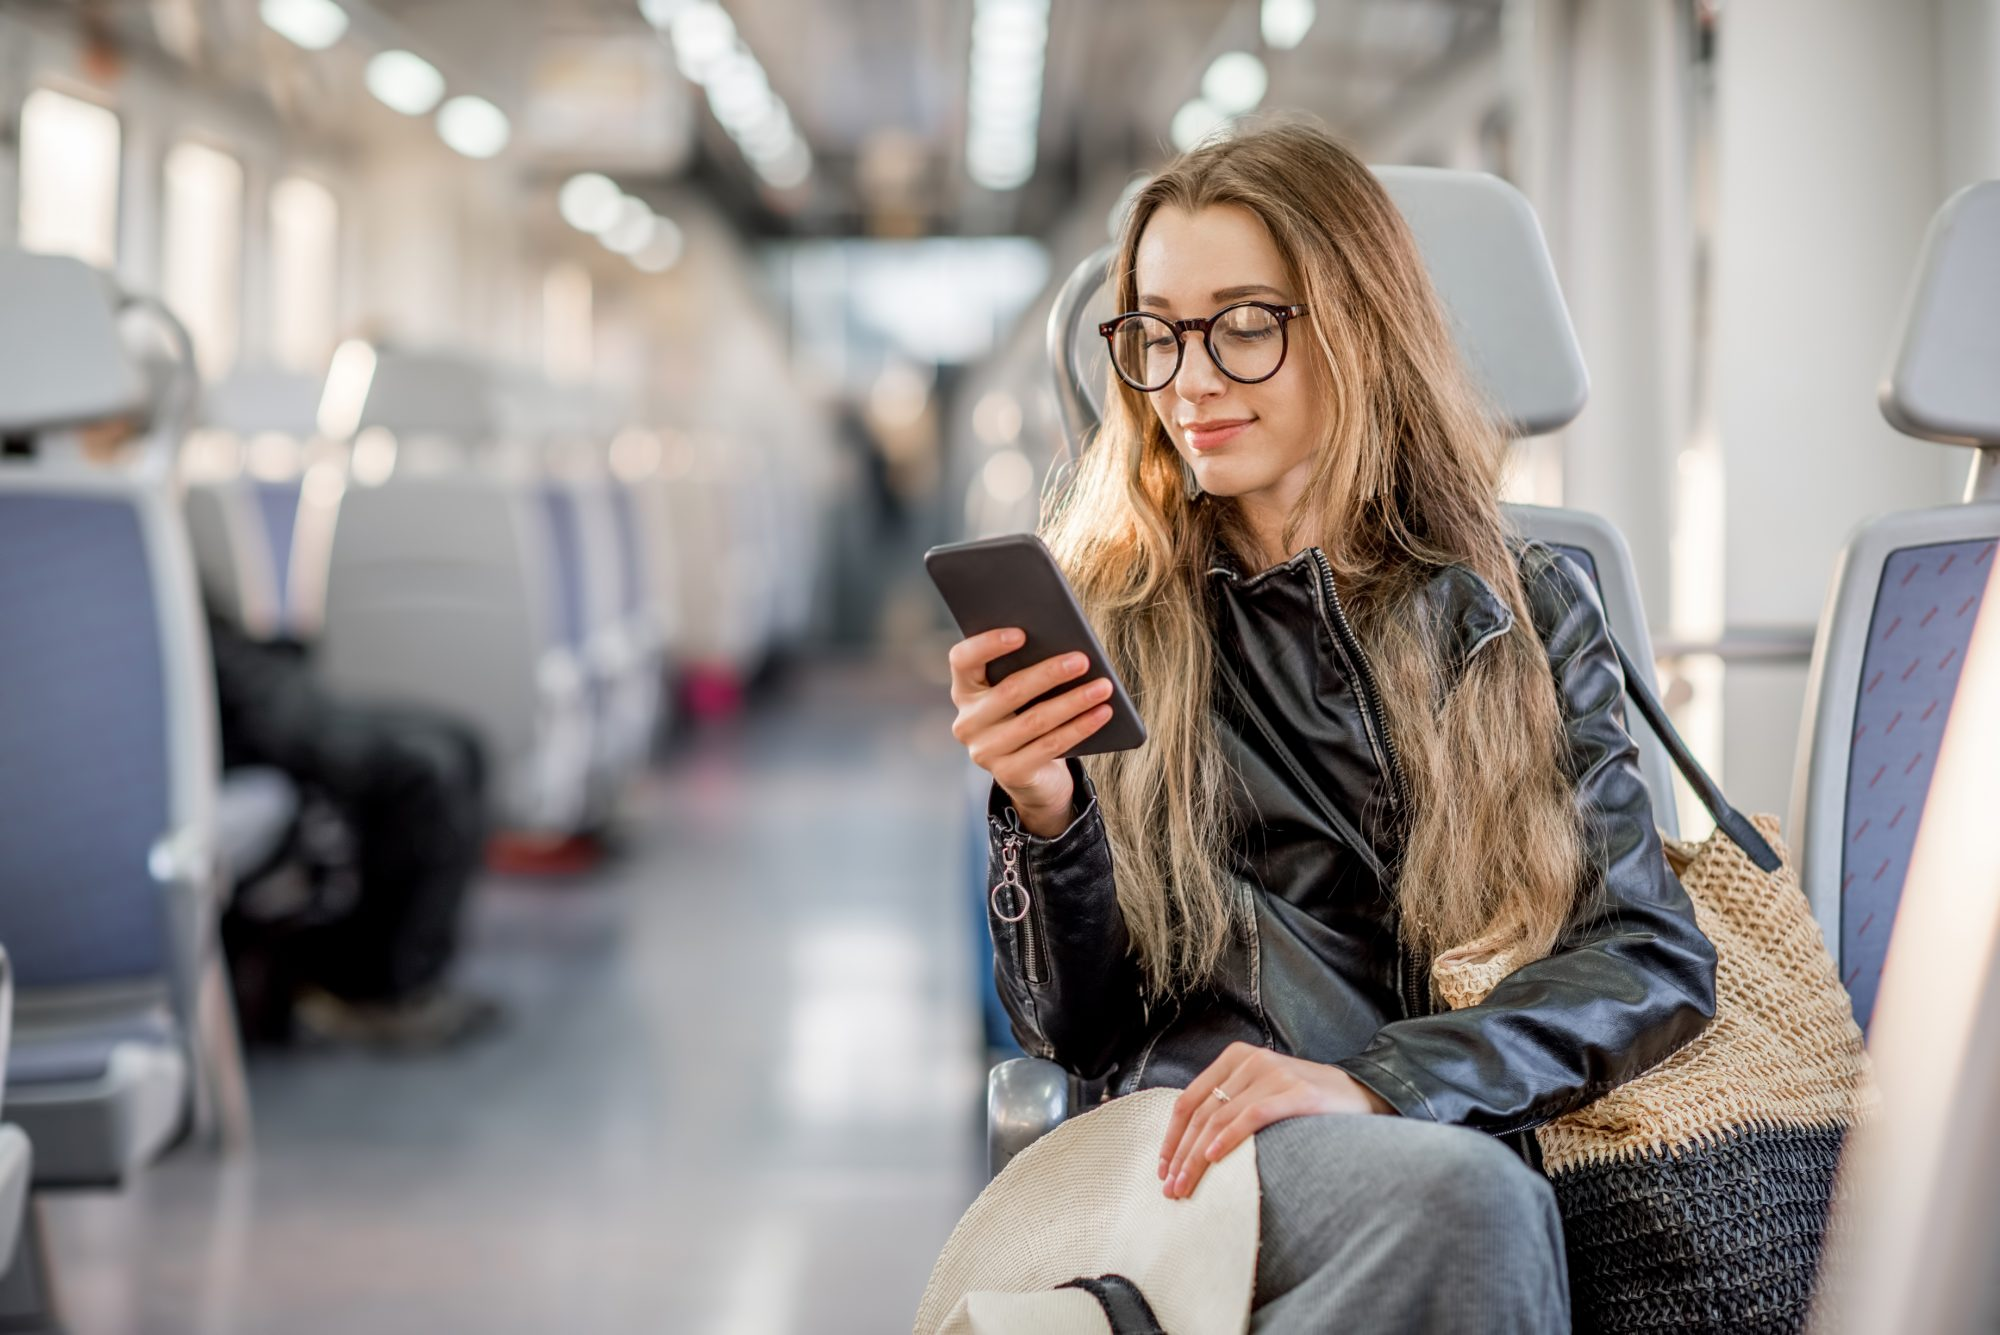 Woman on subway on her phone.